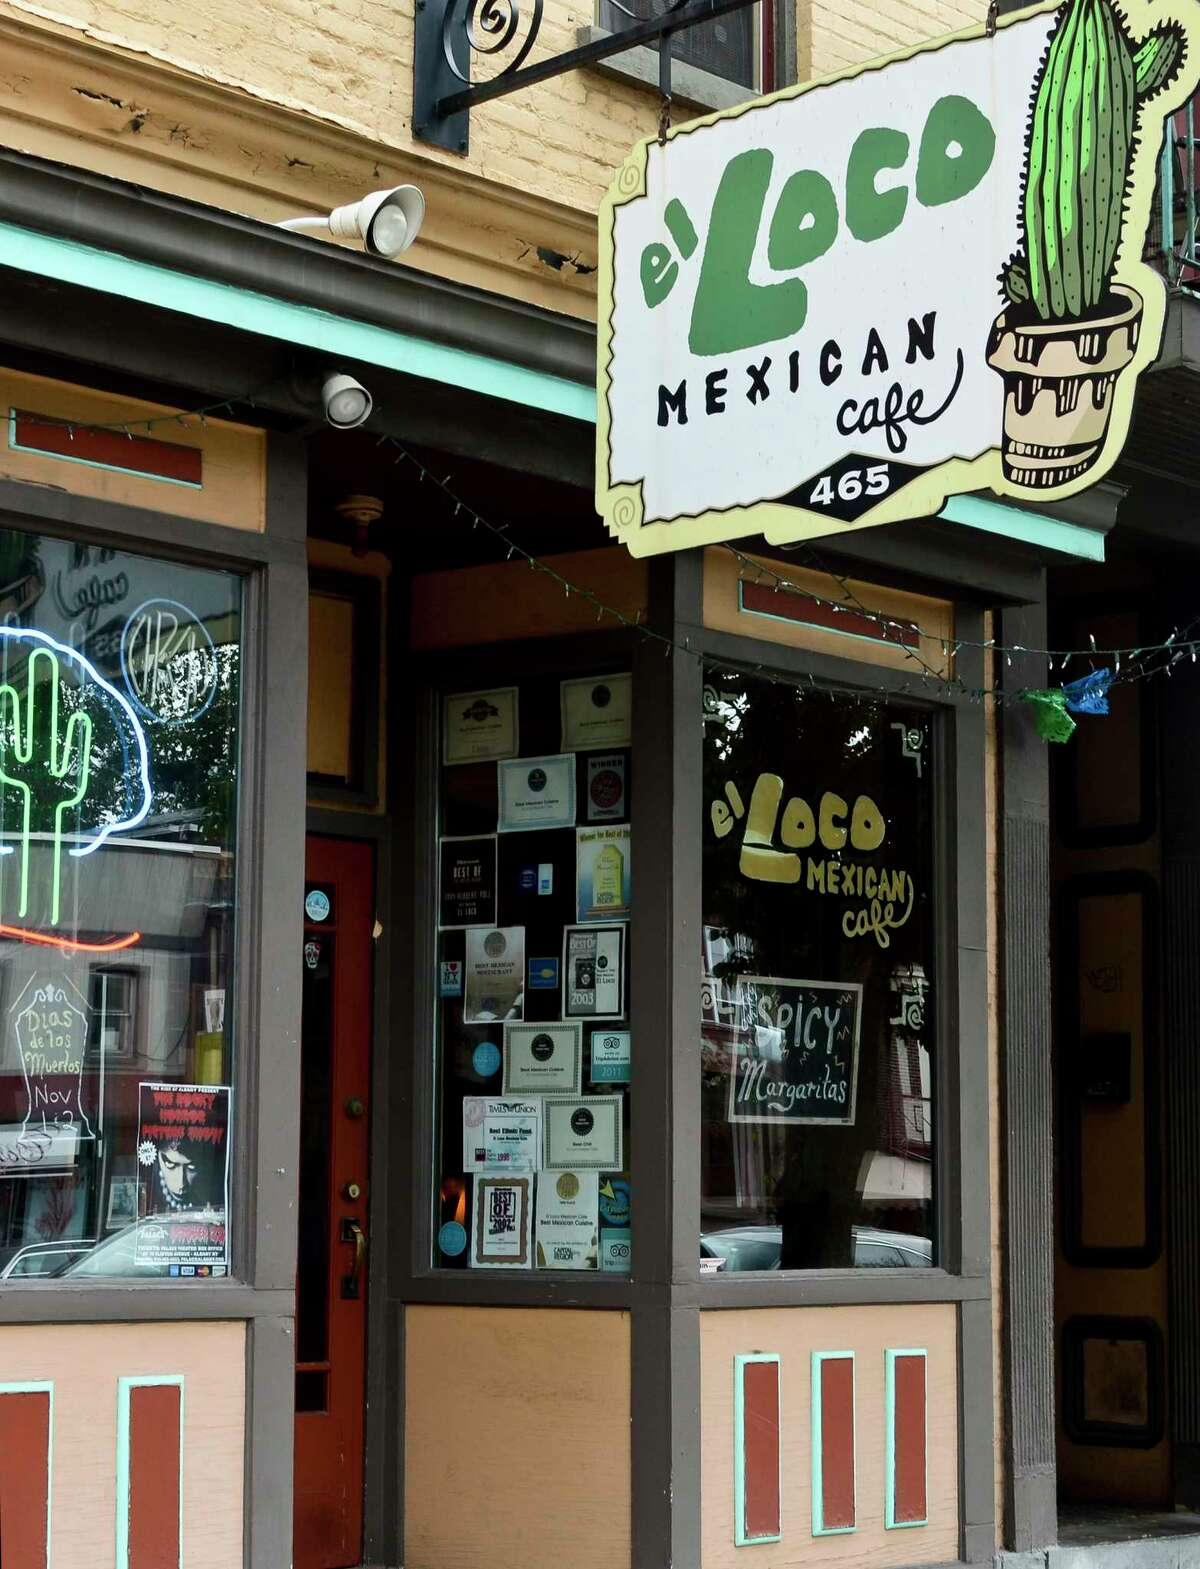 Best Mexican/Central/South American restaurant 465 Madison Ave., Albany | Website